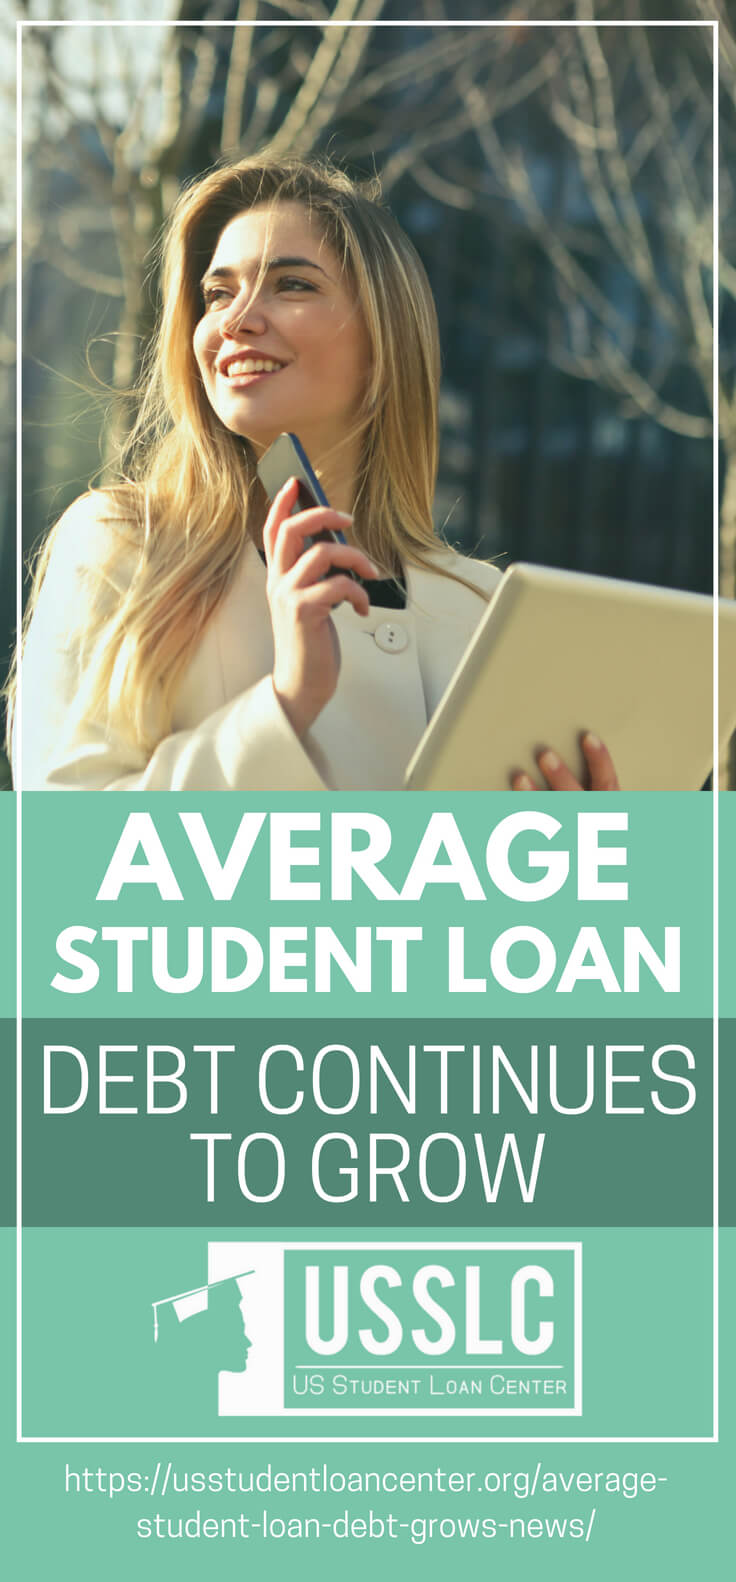 Average Student Loan Debt Continues to Grow